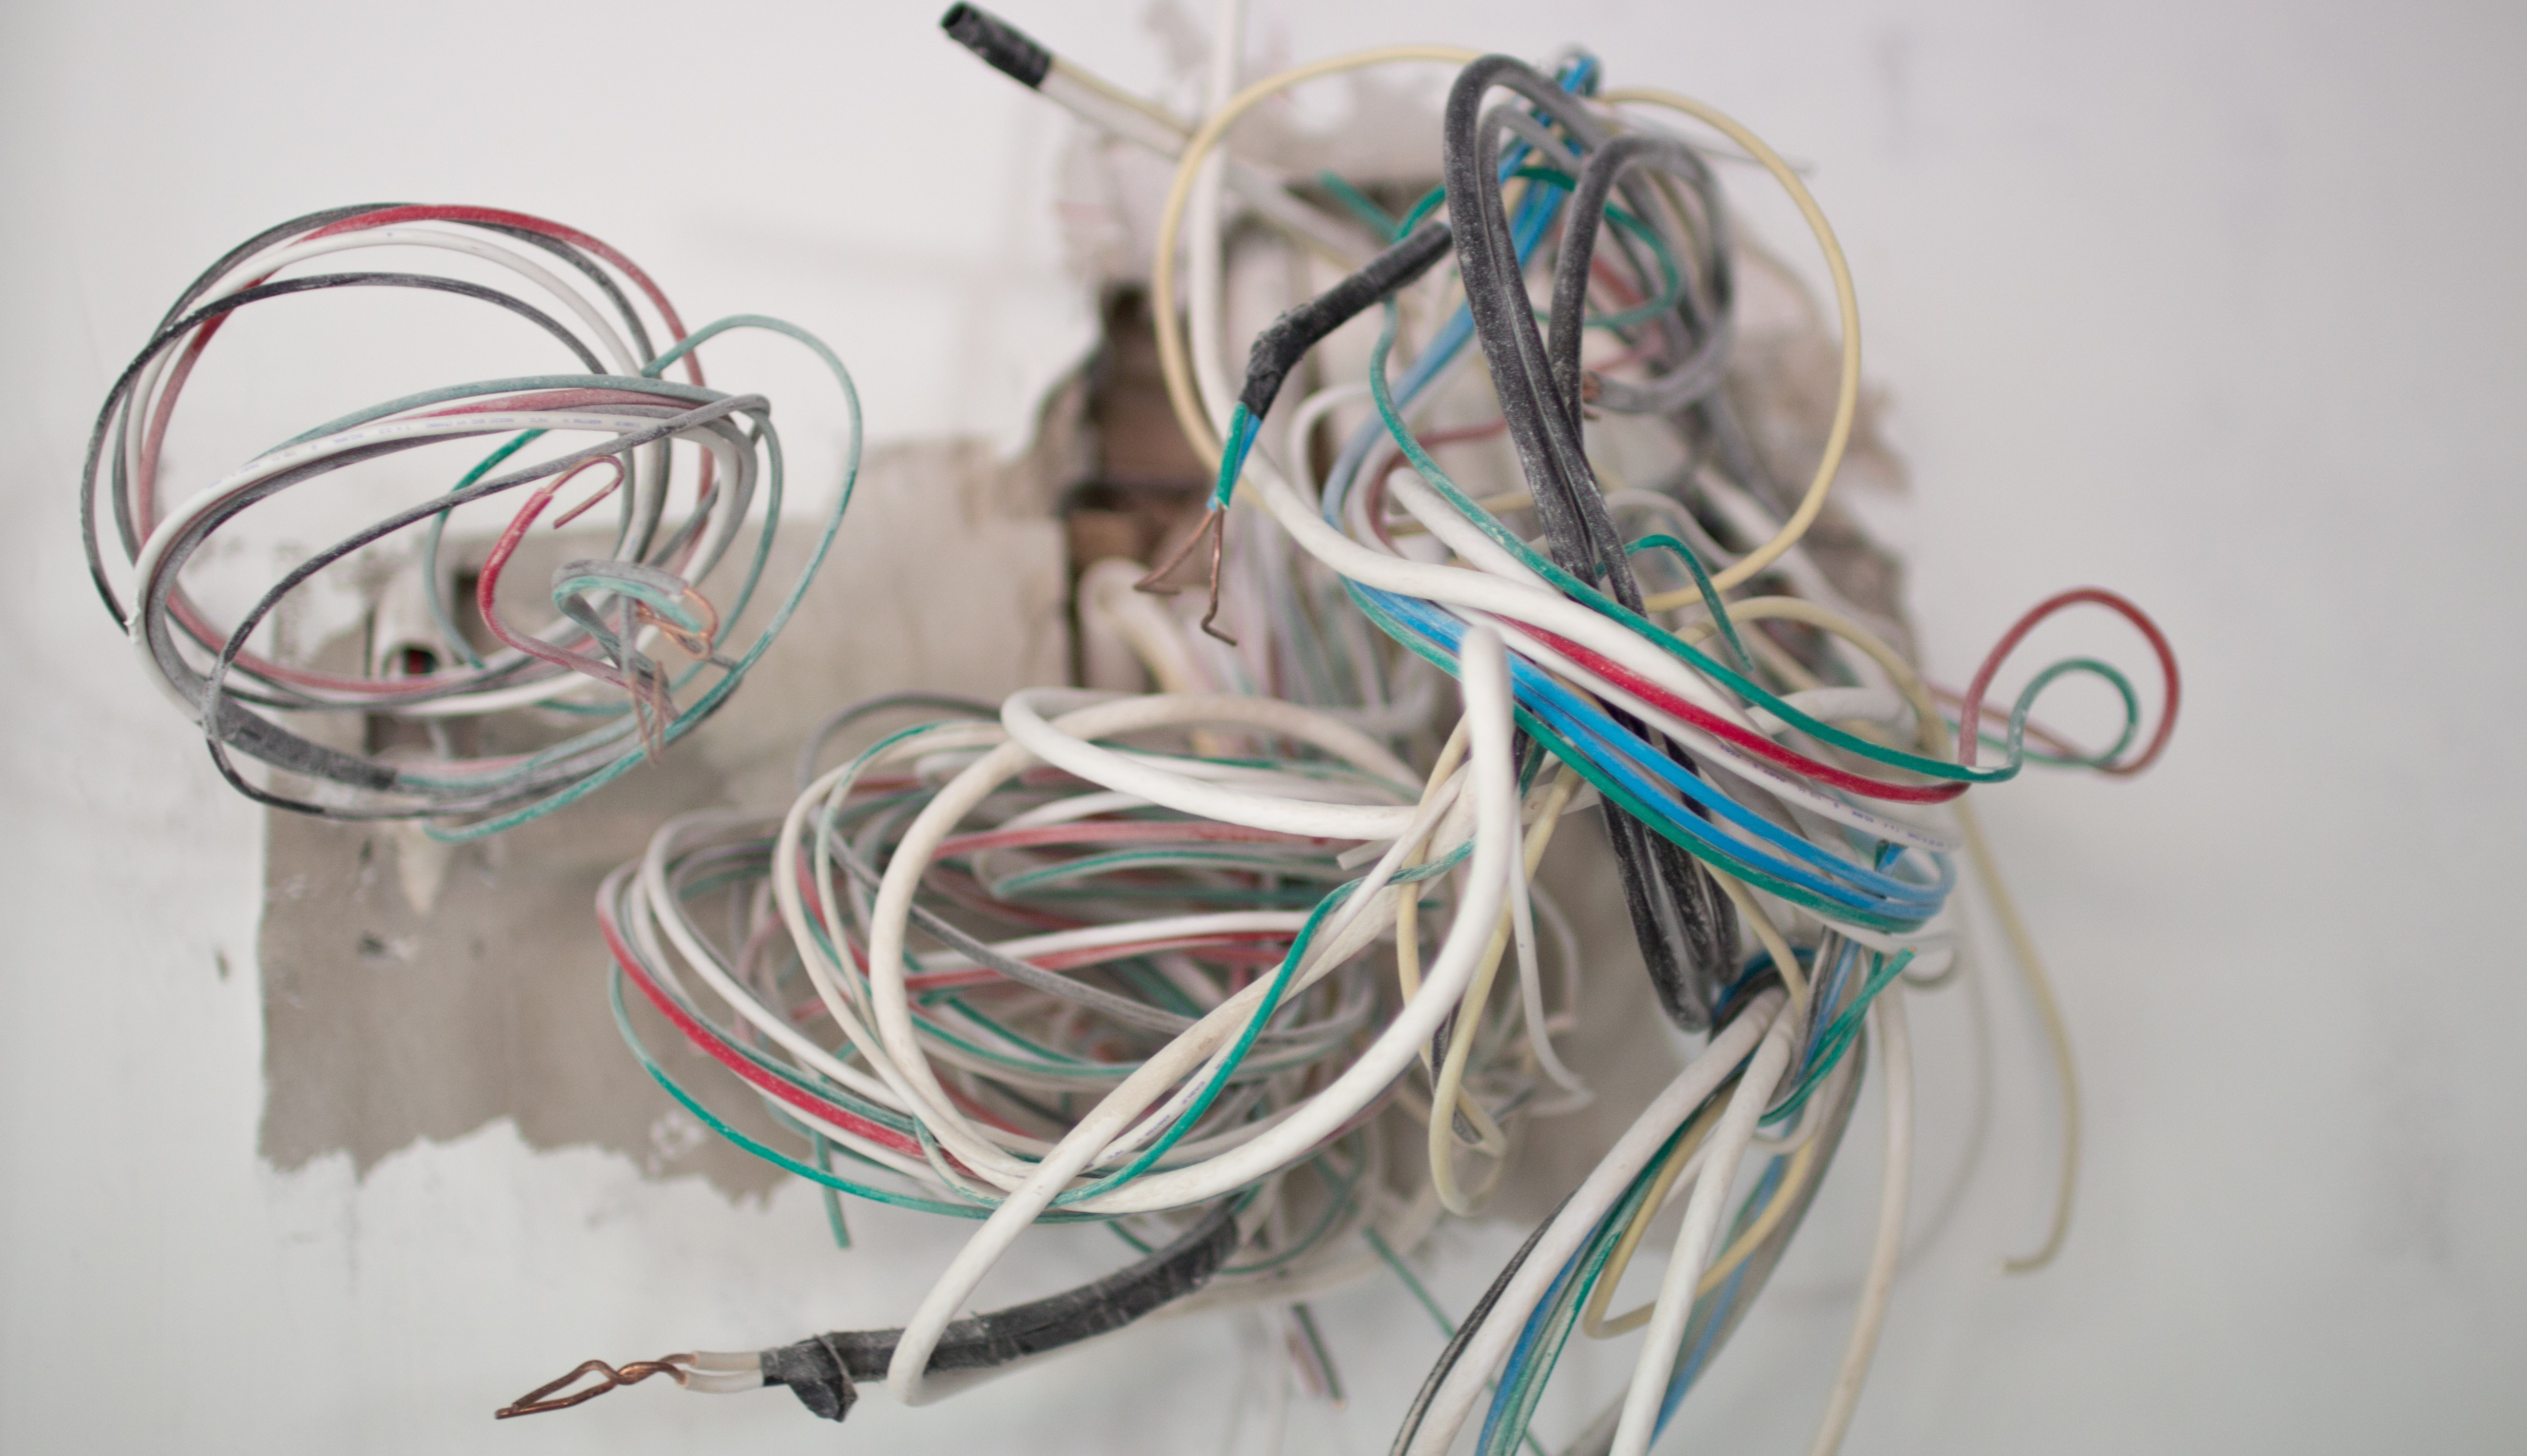 old cords out of a wall